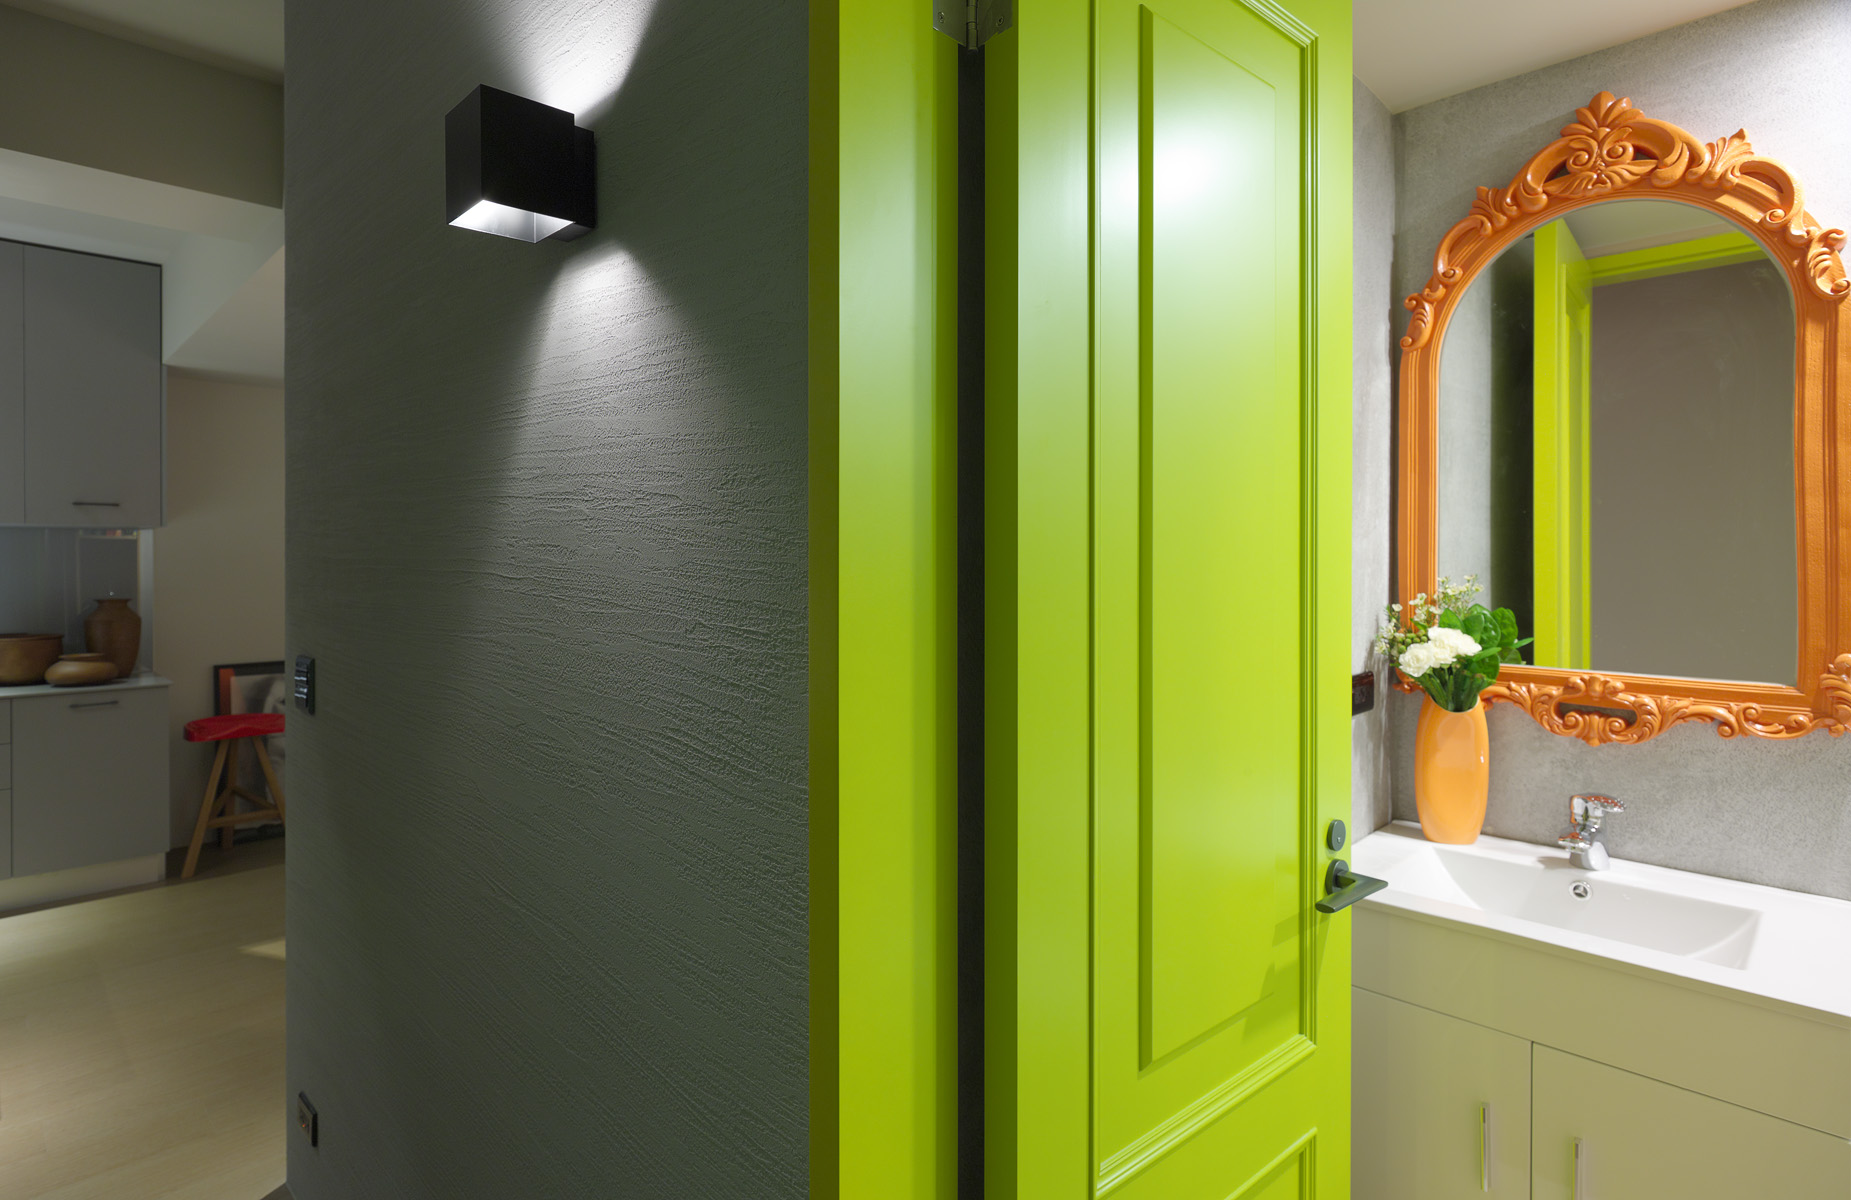 5-funky-mirror-frame-interior-design-ideas-the-overall-palette-of ...